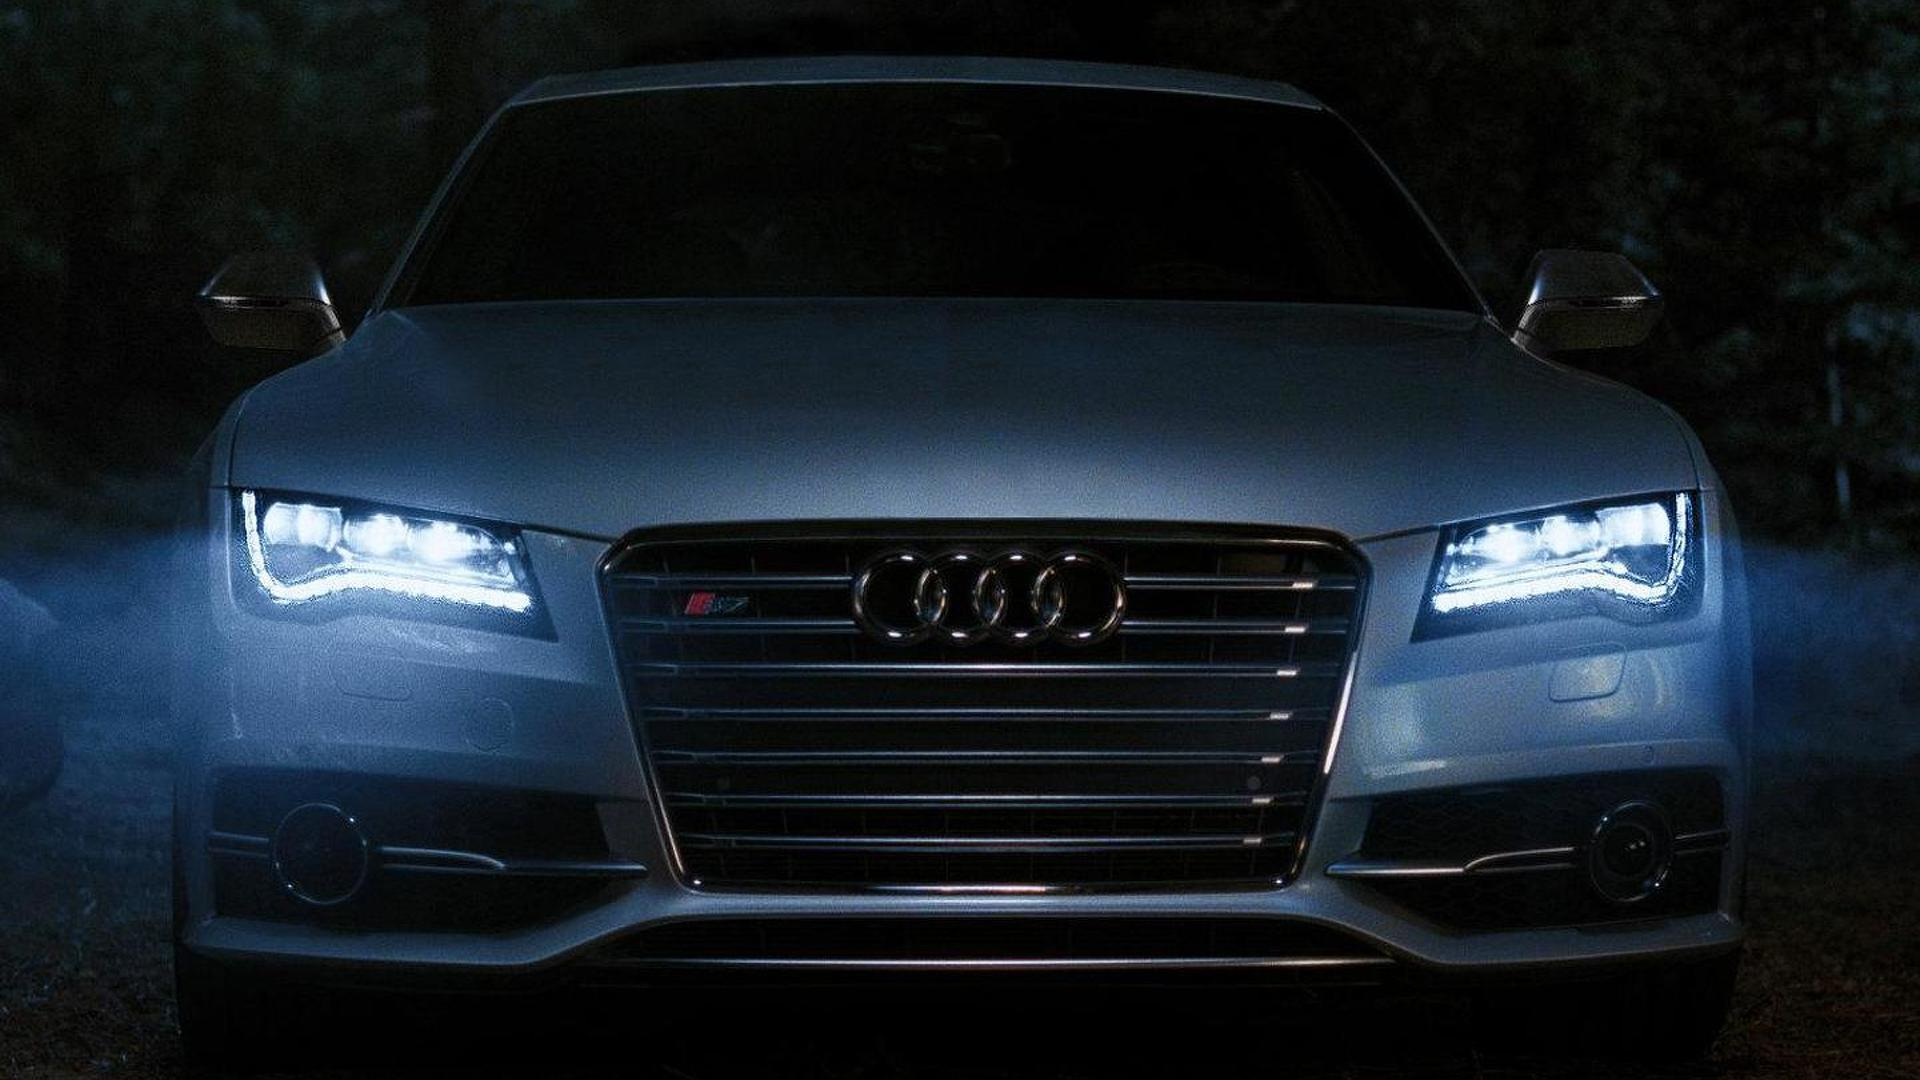 Audi Superbowl Commercial To Feature Audi S7 And Led Tech